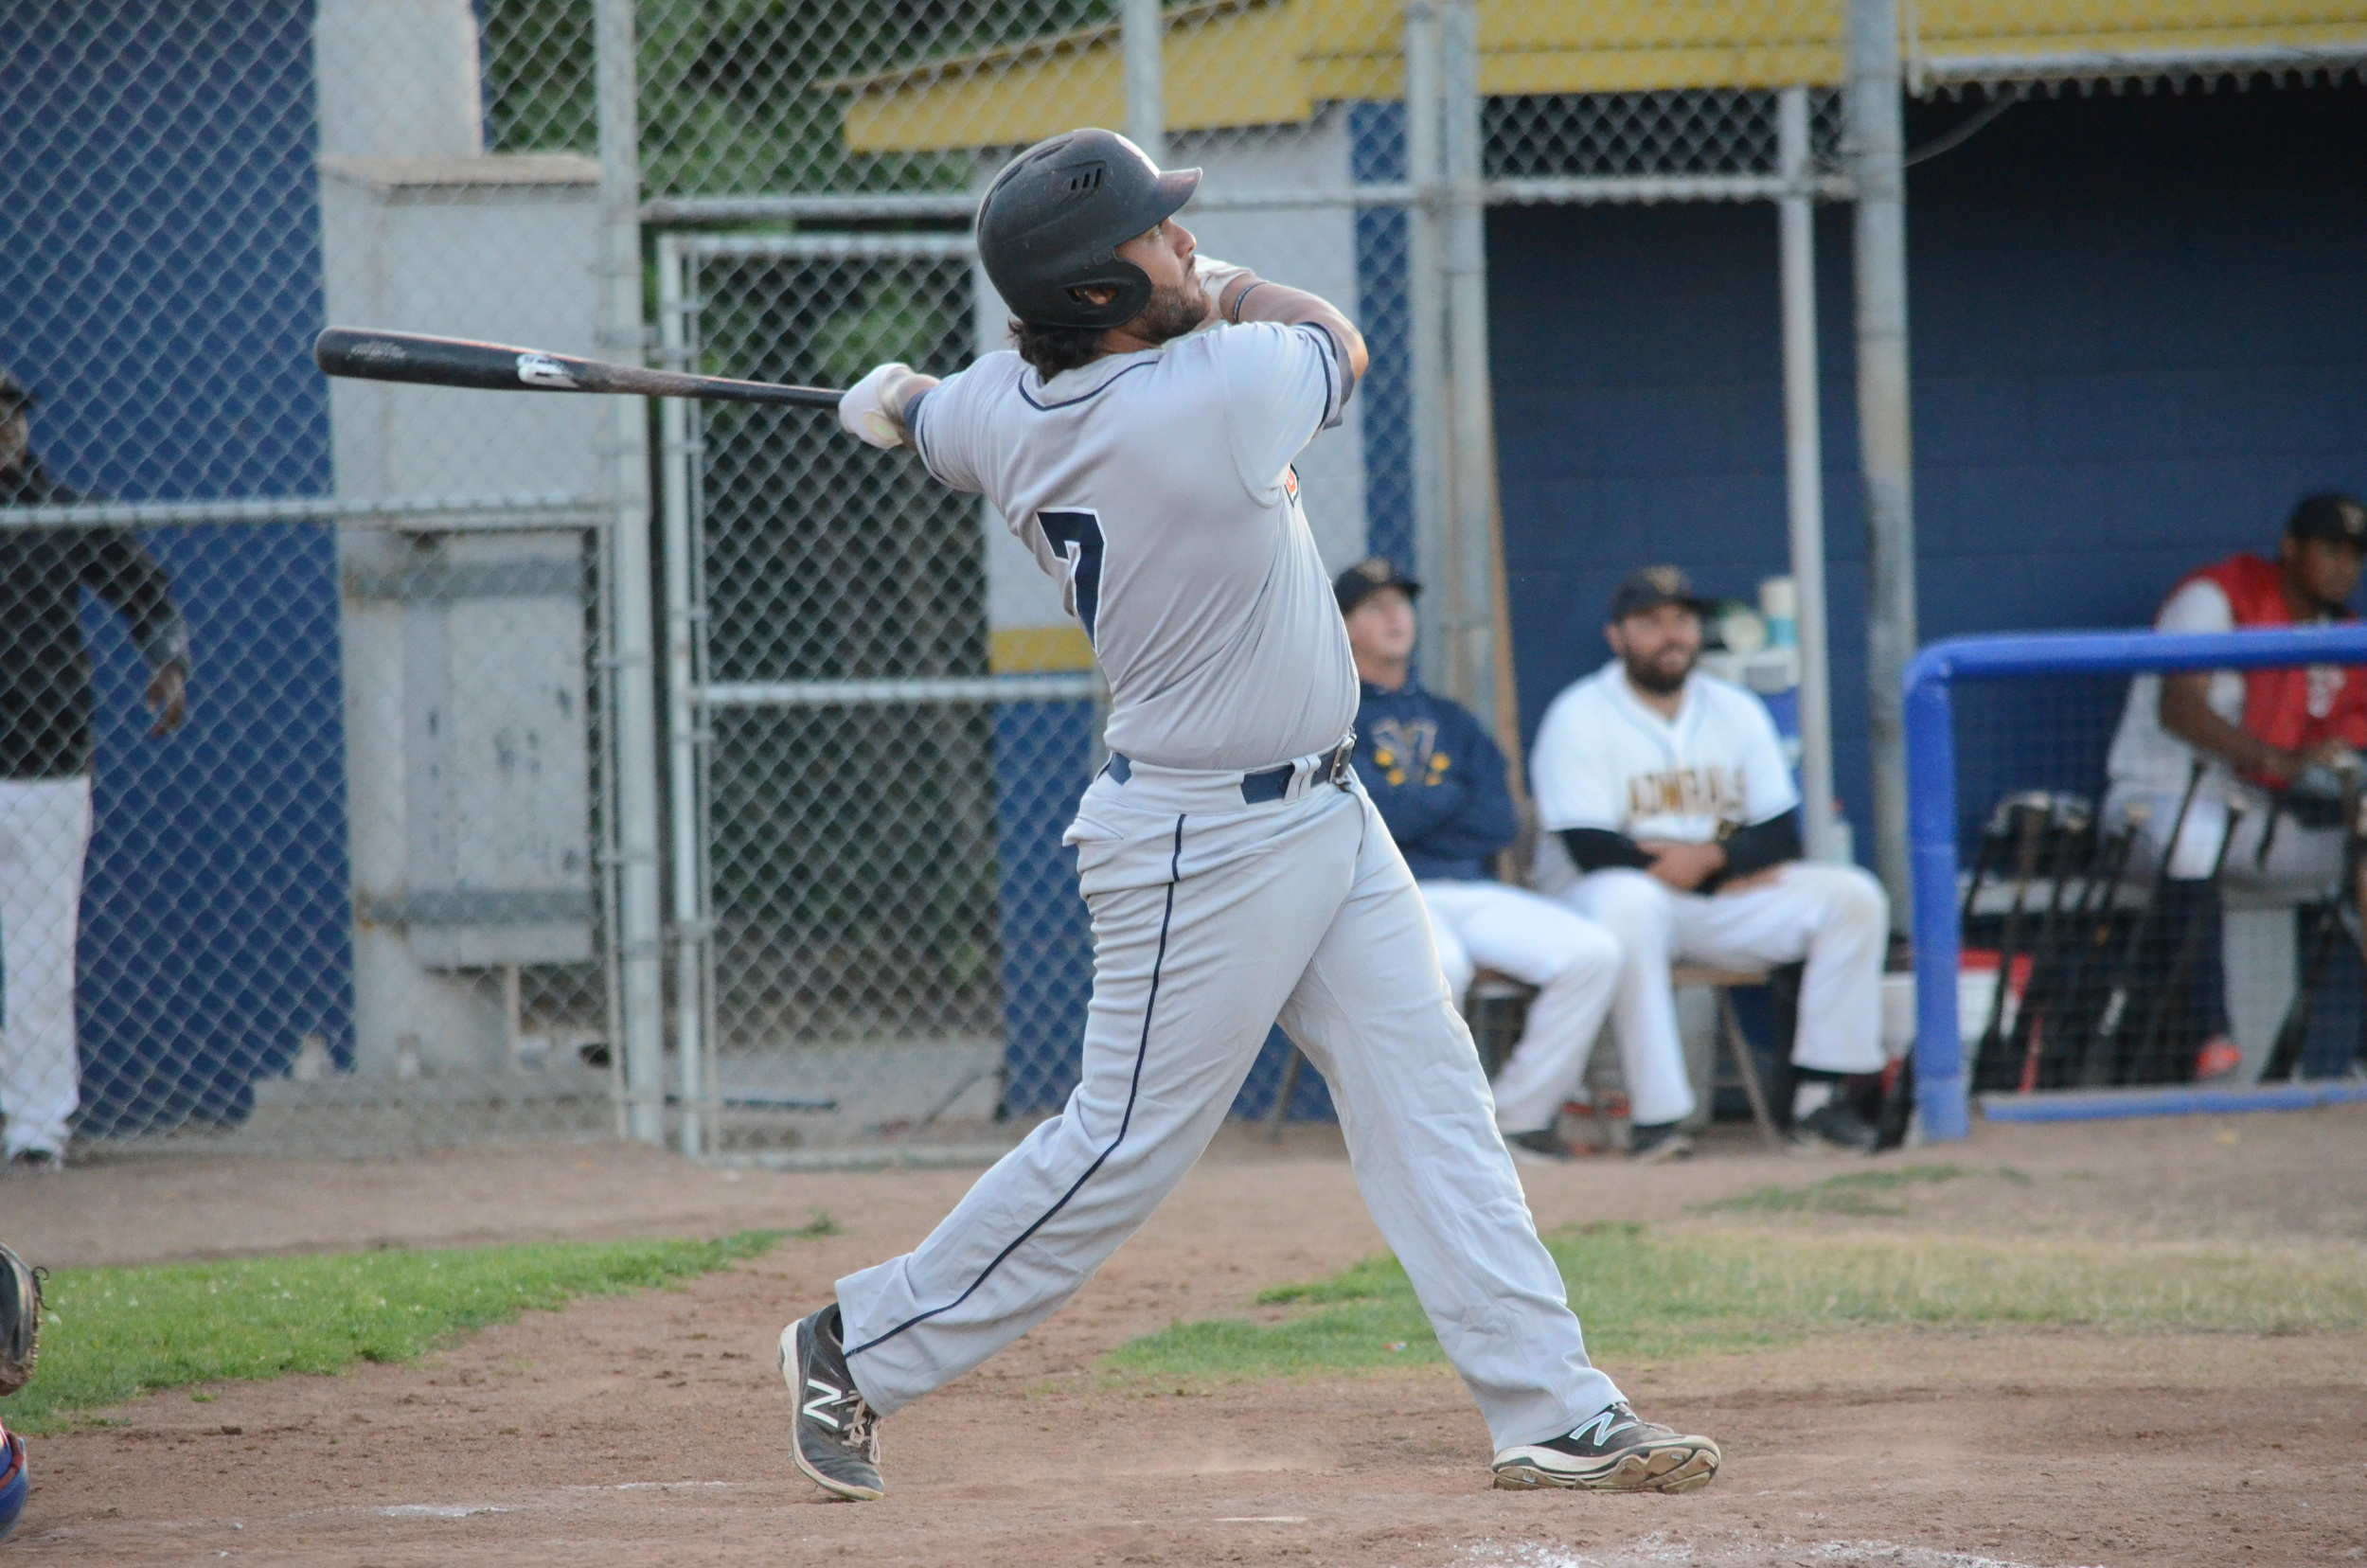 Joel Carranza launched a solo home run to center field in the Stompers 8-3 loss to the Admirals Friday.   James Toy III/Sonoma Stompers